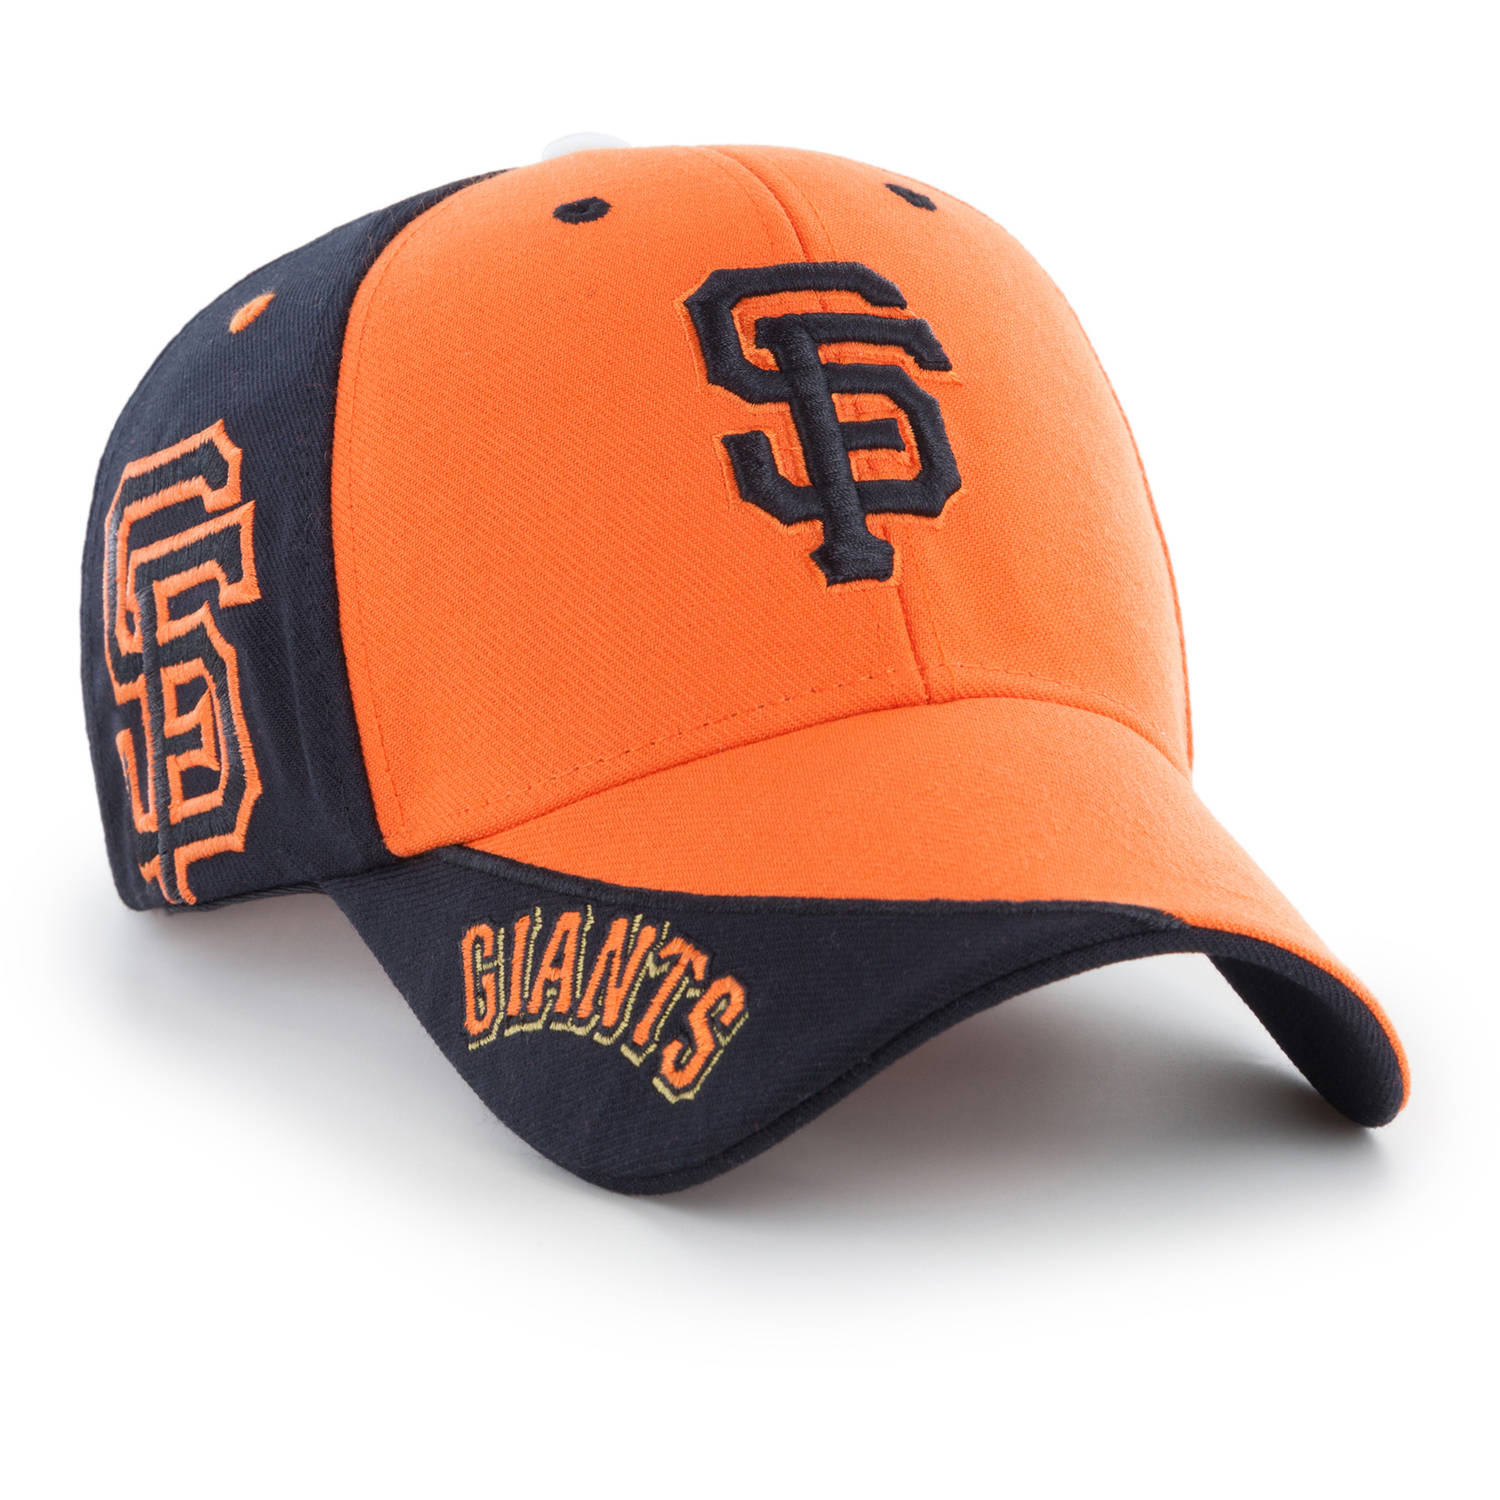 MLB San Francisco Giants Mass Hubris Cap - Fan Favorite